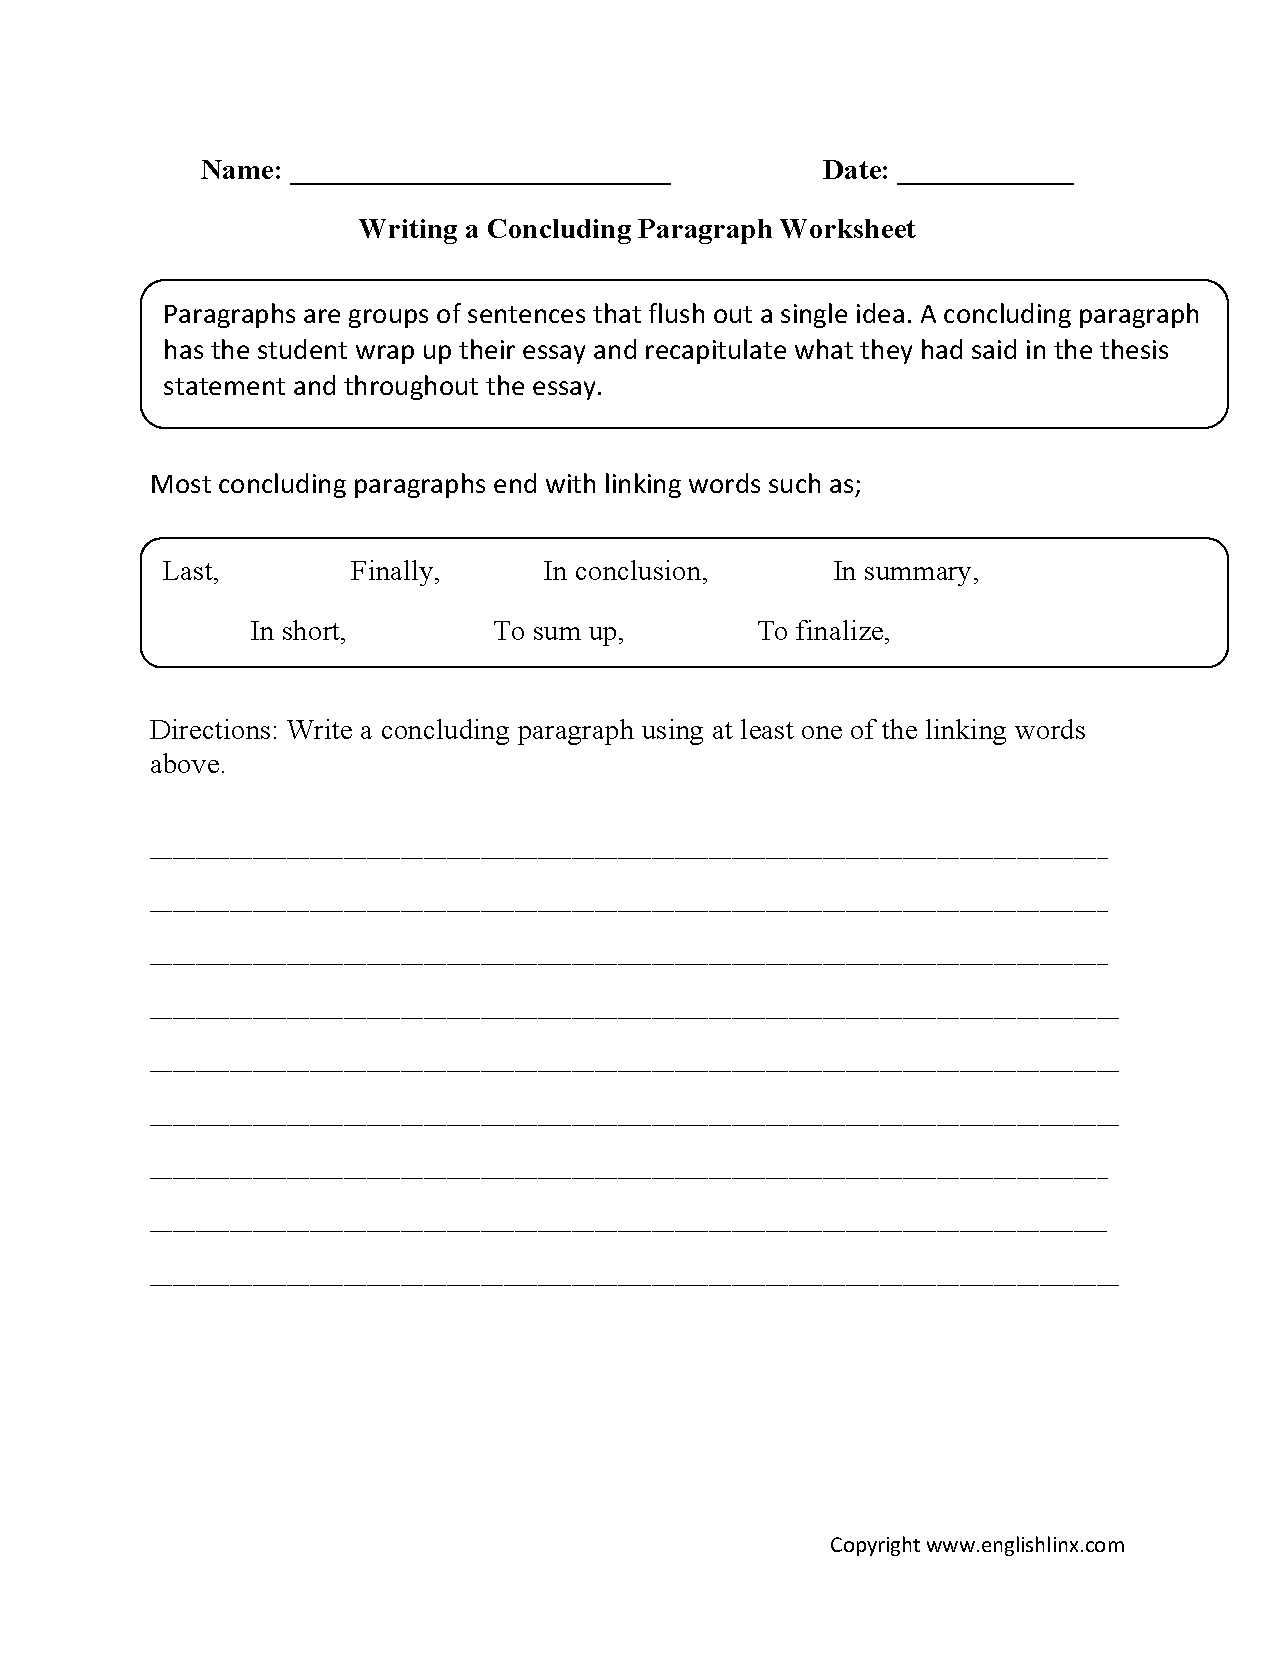 worksheet Writing Paragraphs Worksheets writing worksheets paragraph concluding worksheets